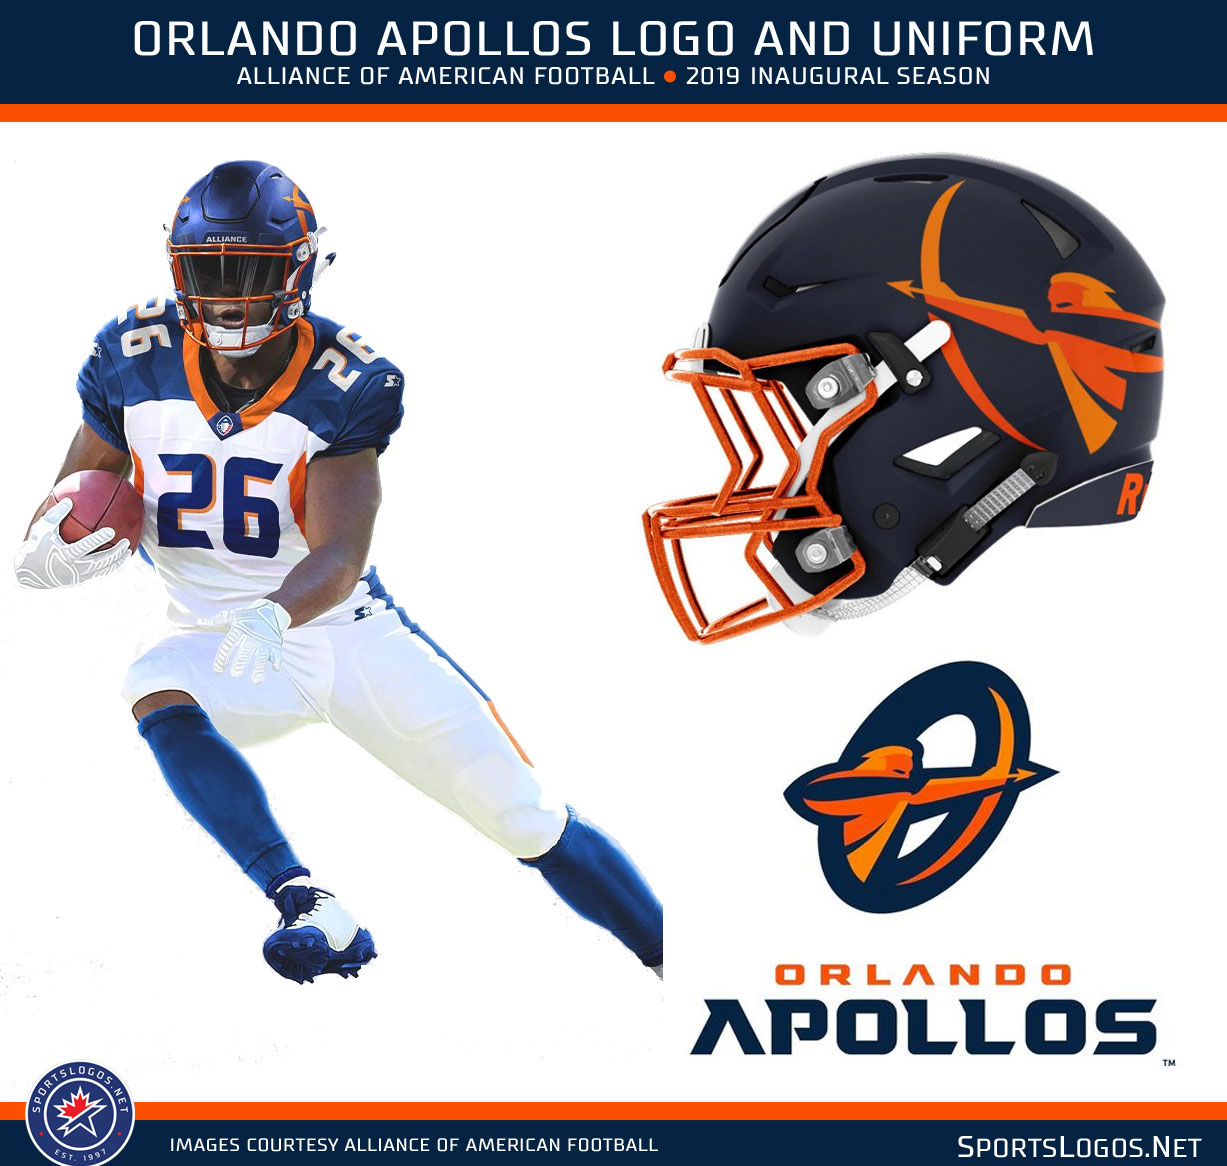 Orlando-Apollos-AAF-Uniforms-2019.jpg